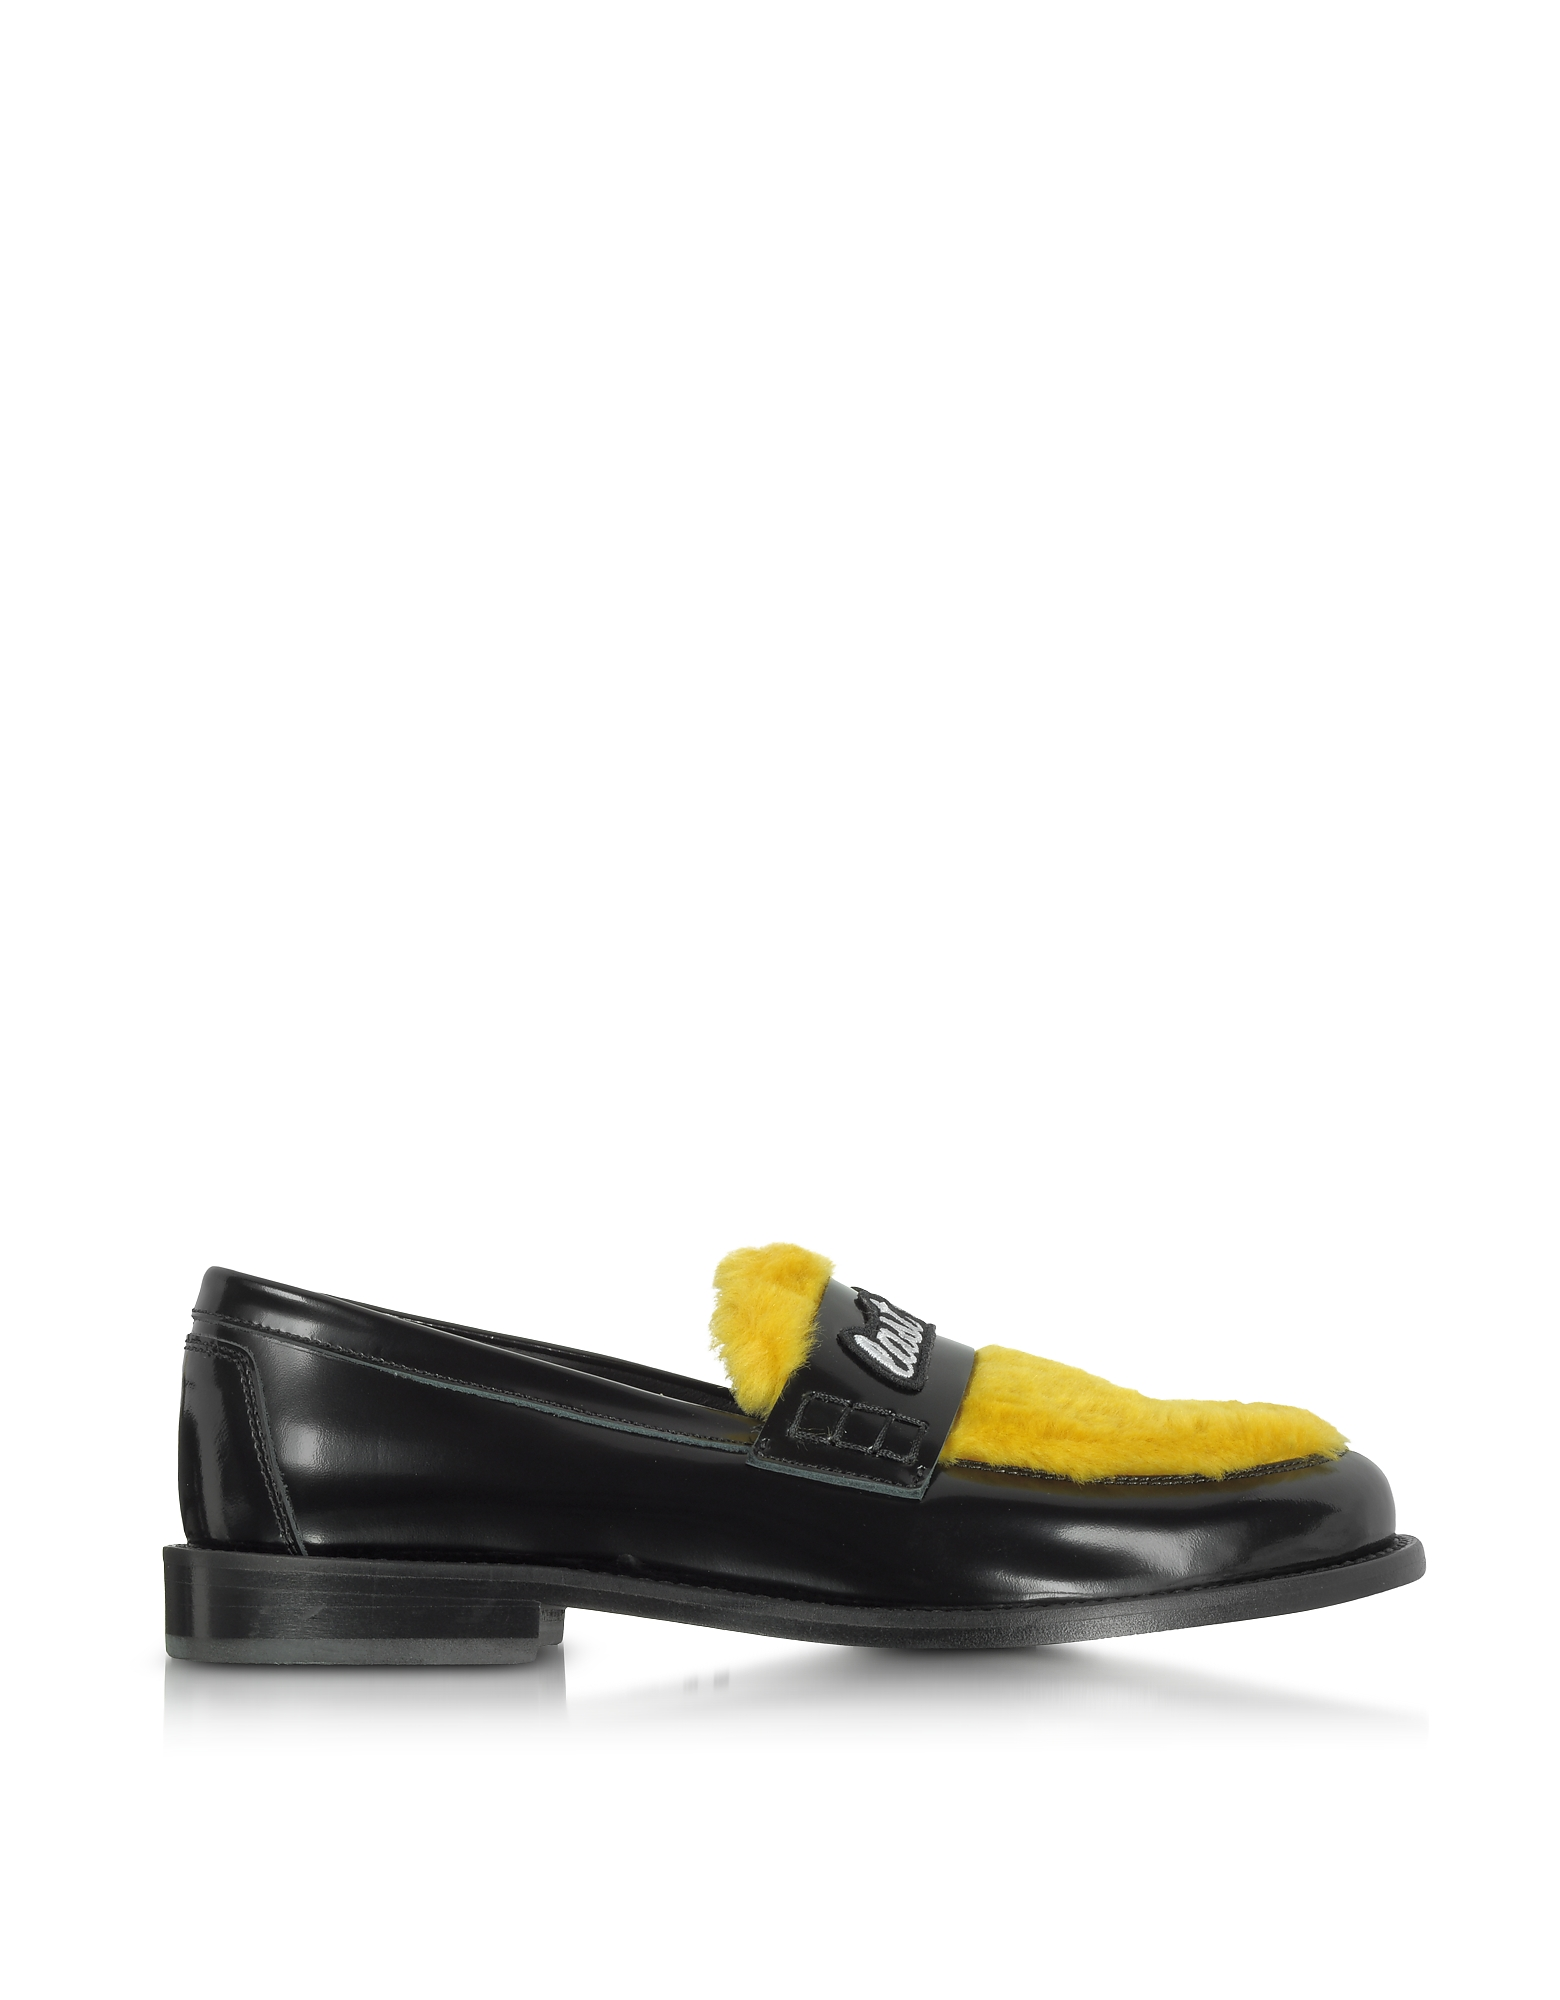 Joshua Sanders Shoes, Yellow Last Dance Furry Loafer